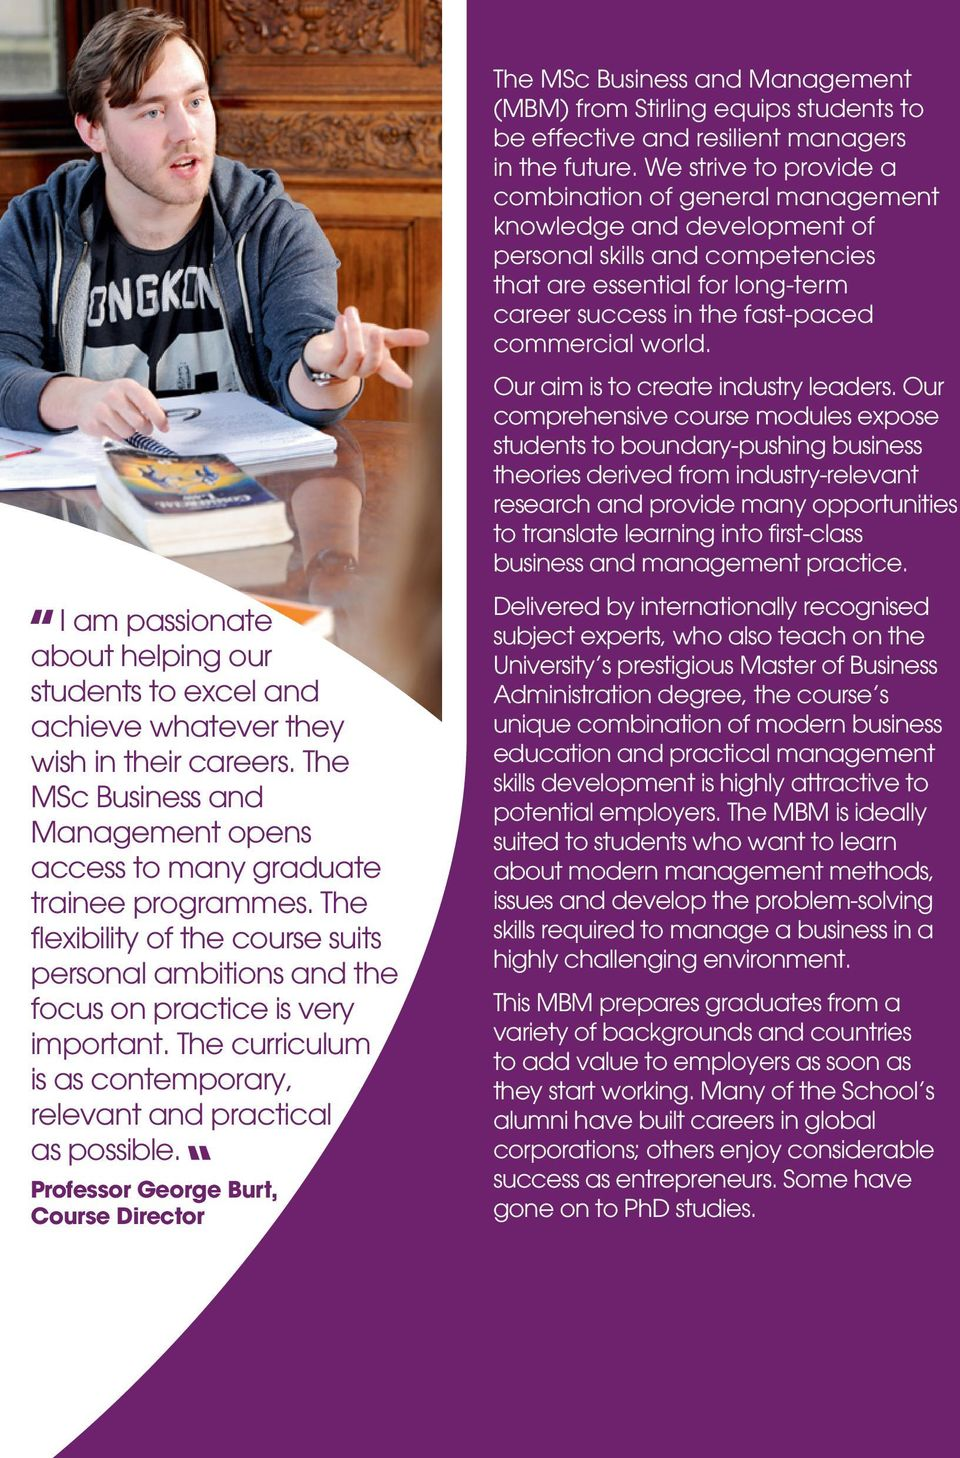 Professor George Burt, Course Director The MSc Business and Management (MBM) from Stirling equips students to be effective and resilient managers in the future.